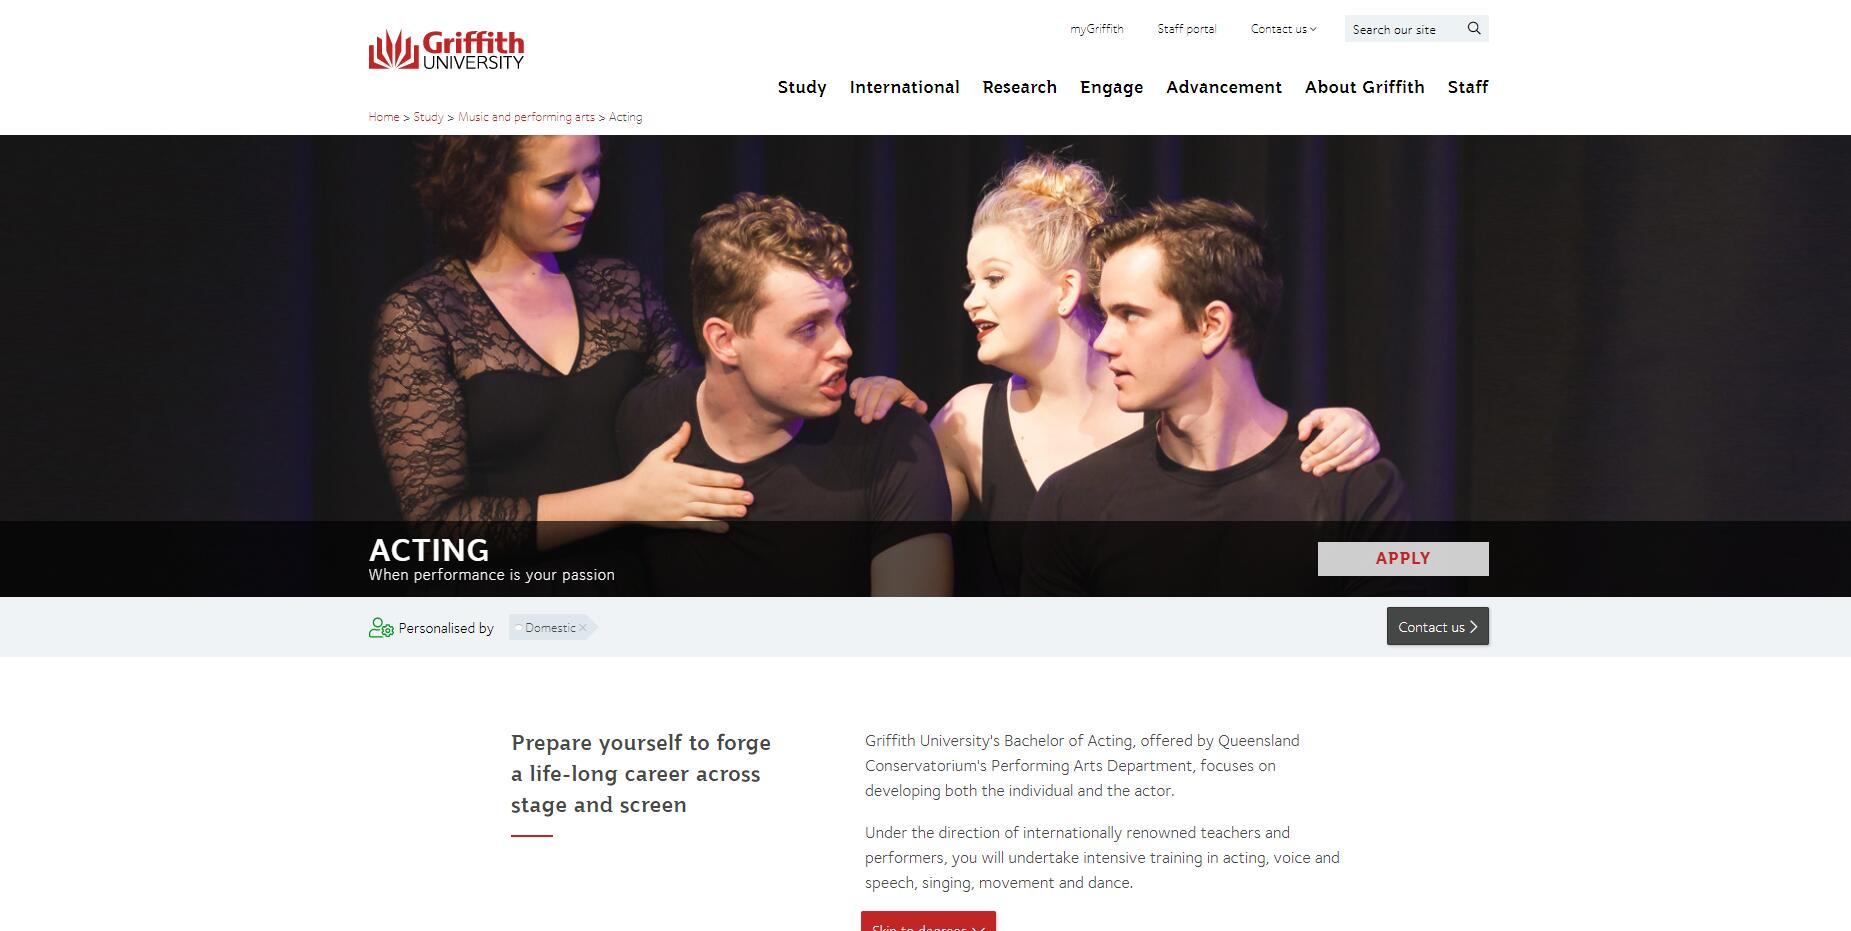 Acting - Griffith University